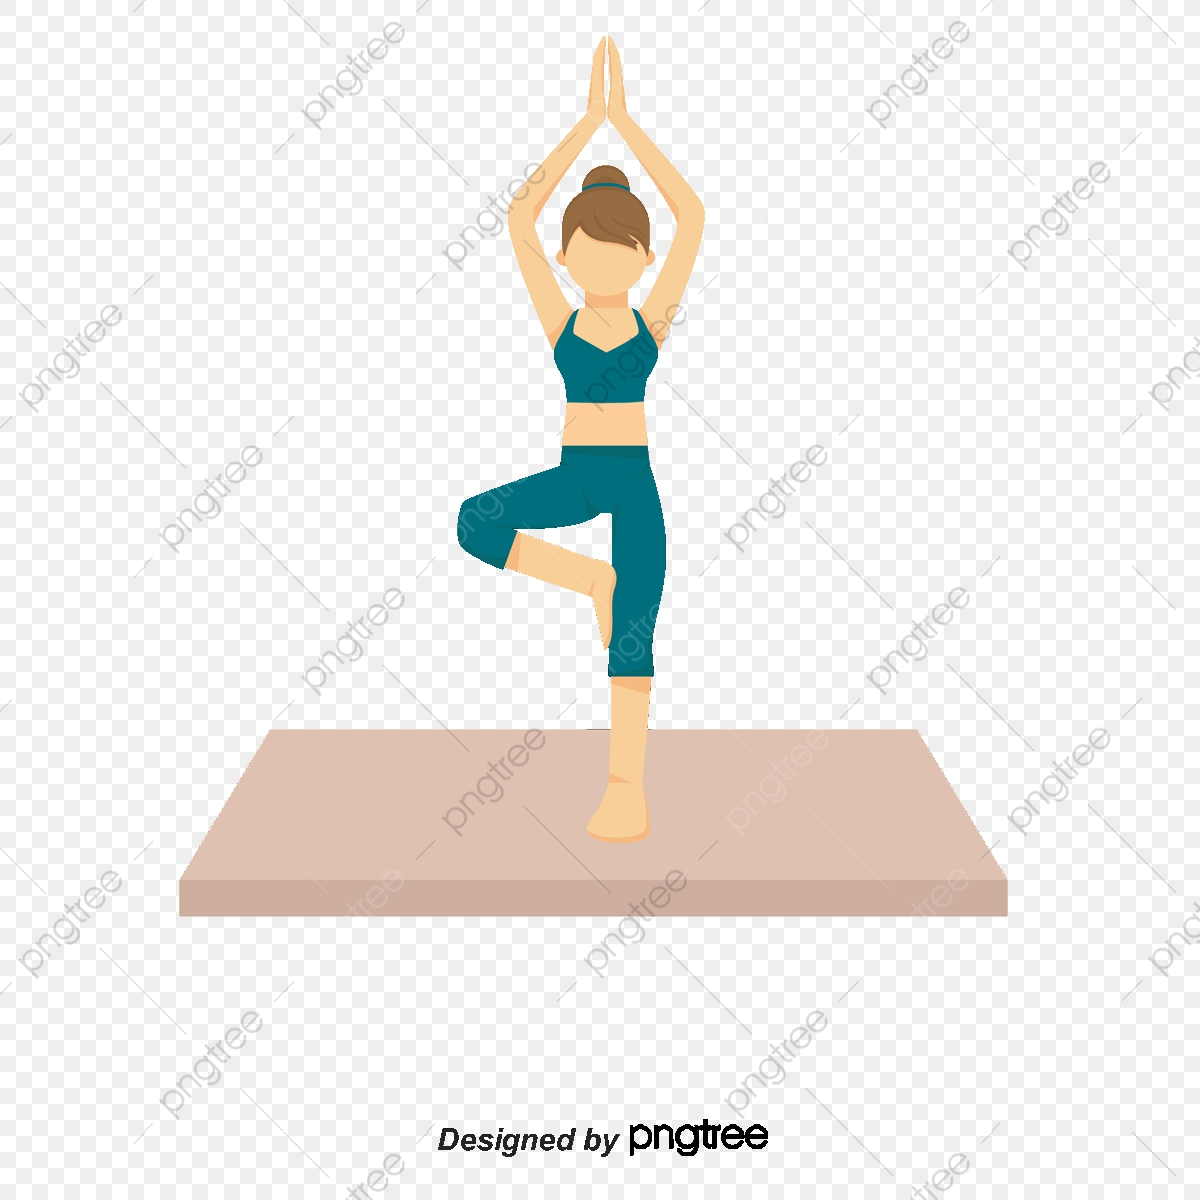 Yoga People People Clipart Woman Cartoon Png Transparent Clipart Image And Psd File For Free Download